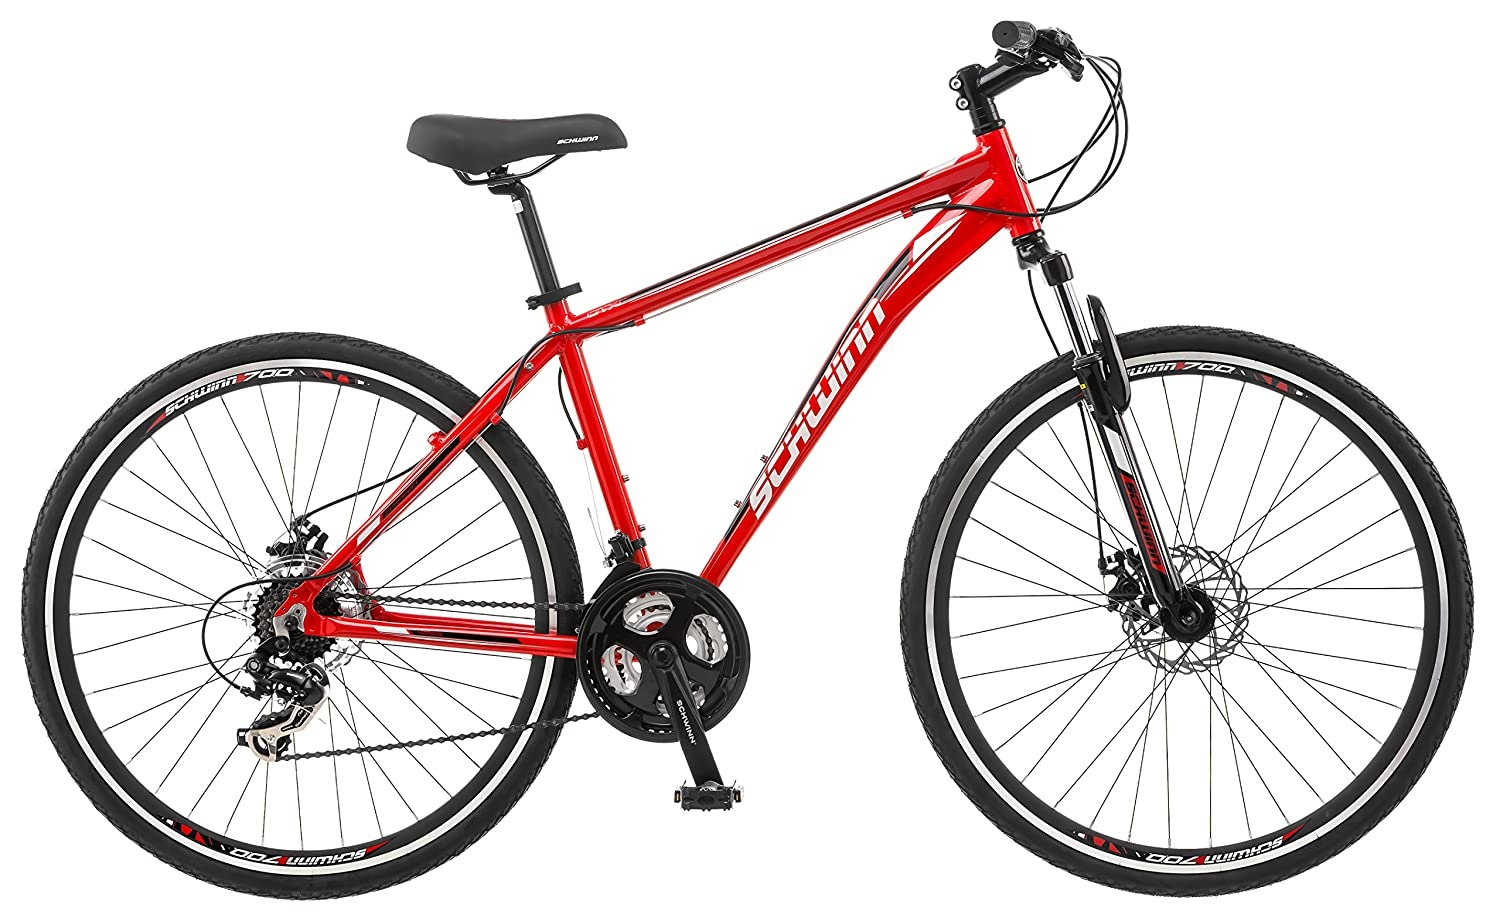 Bike Hybrid T1000 21 Spd Shogun Kent 700 Bike Inch Medium Red